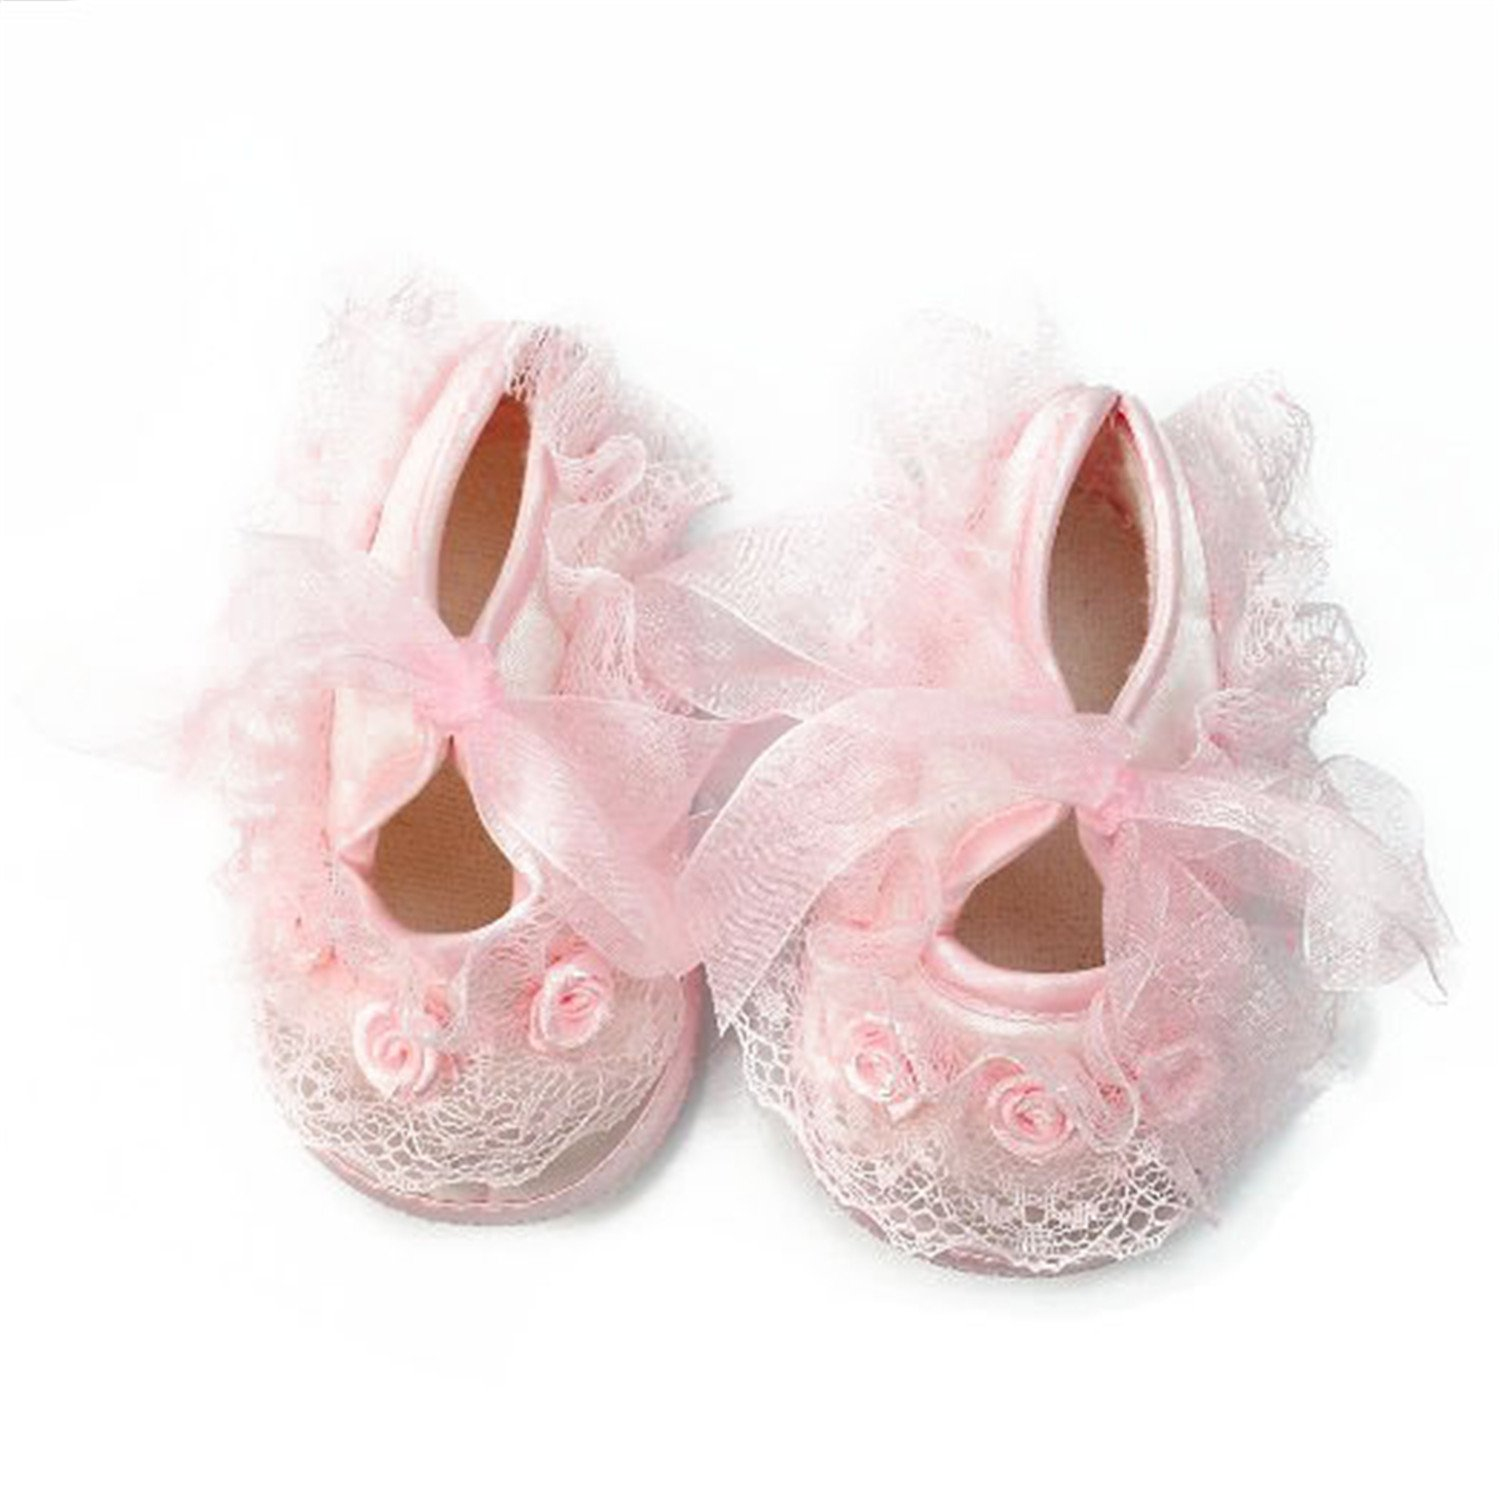 Pinzhi® Princess Non-Slip Newborn Baby Toddler Girl Beautiful Lace Shoes 0-3 Month - Pink SPQLUF1507